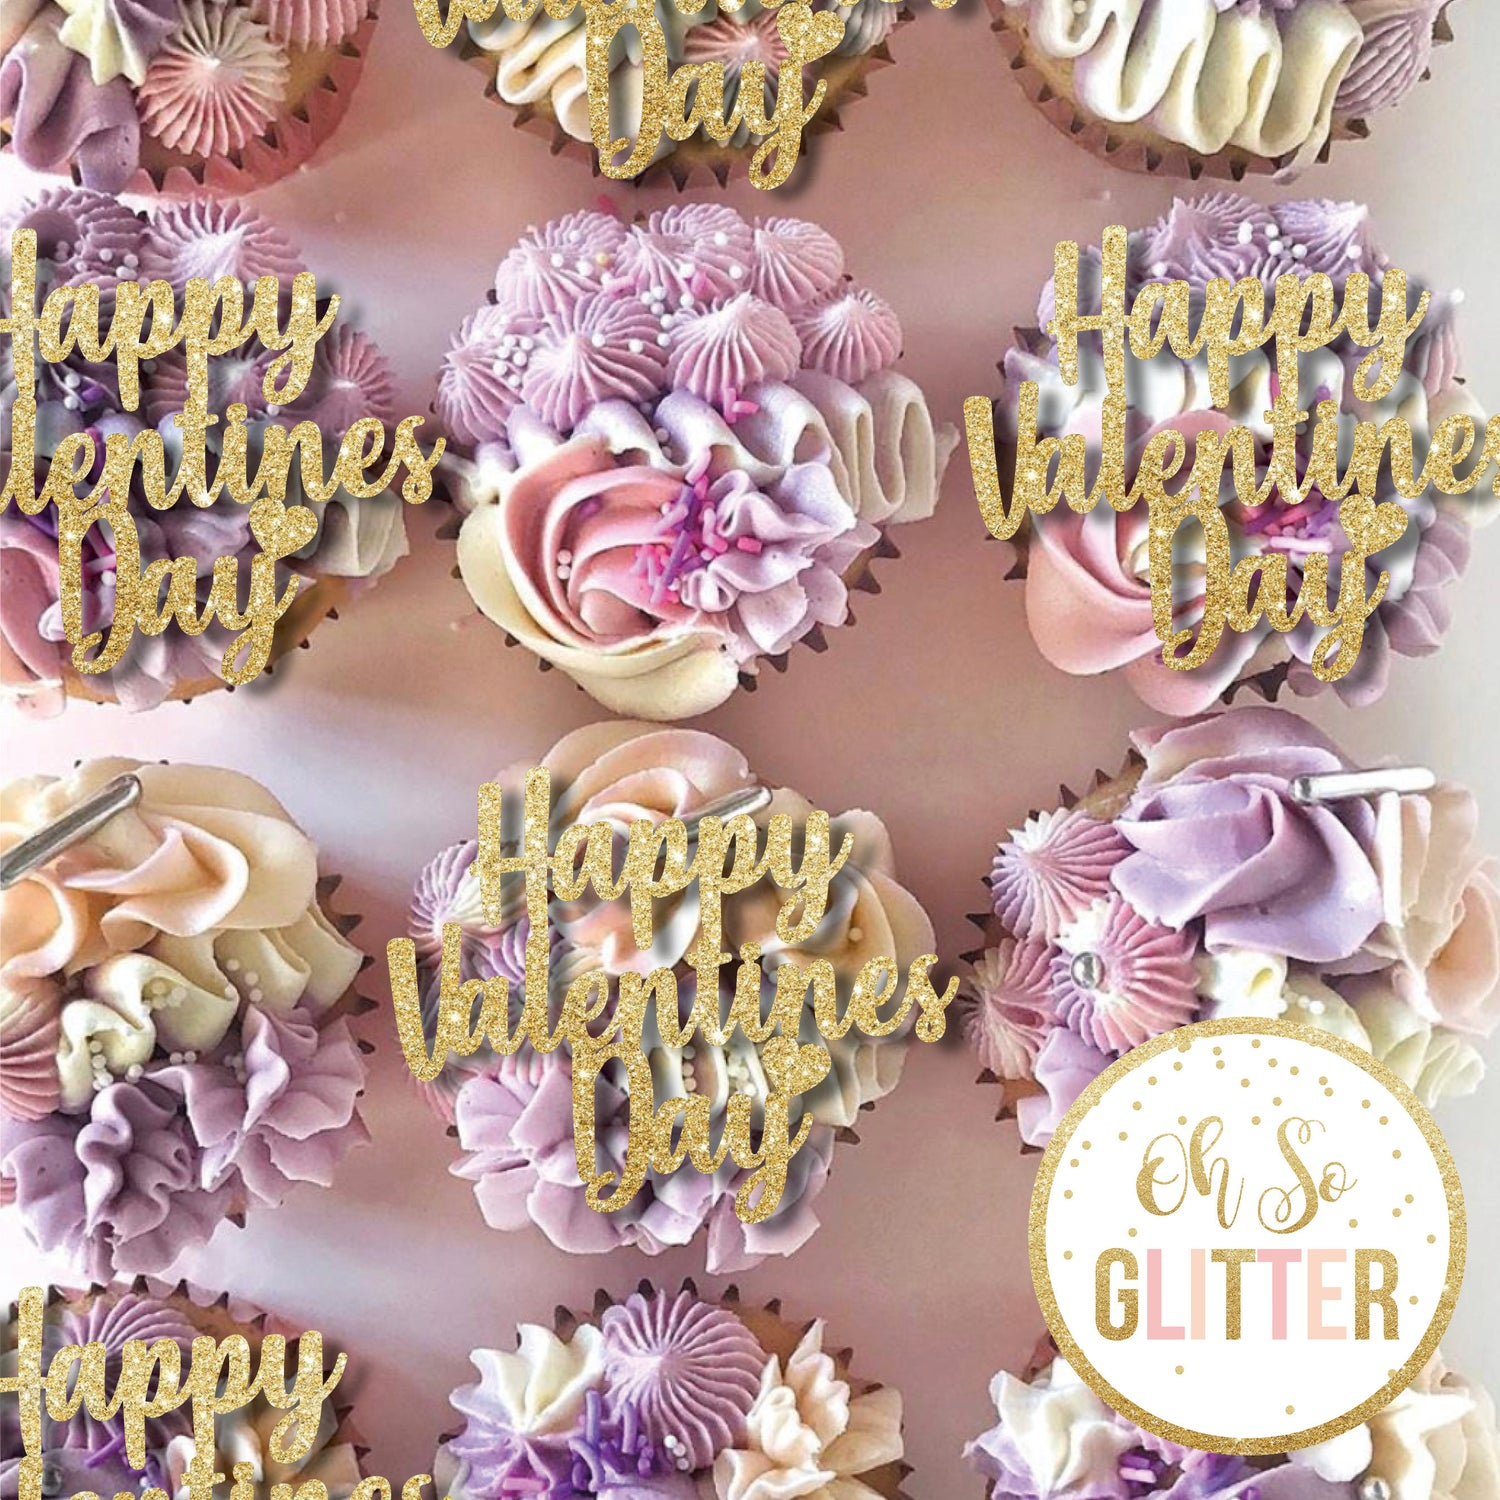 Image of Happy Valentines Day Cupcake toppers - no sticks